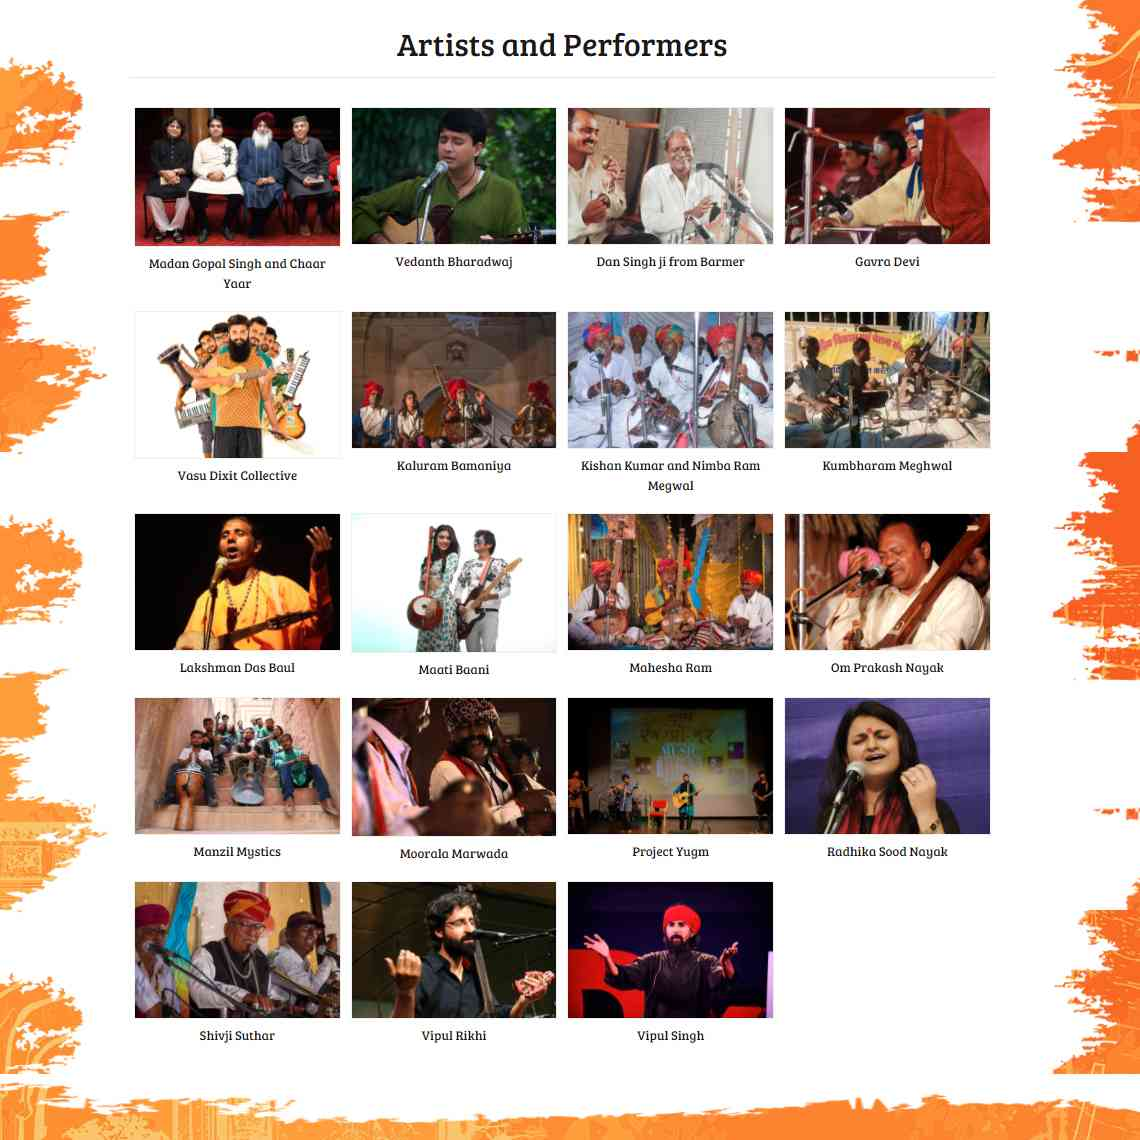 Rajasthan Kabir Yatra 2017 - Artists and Performers